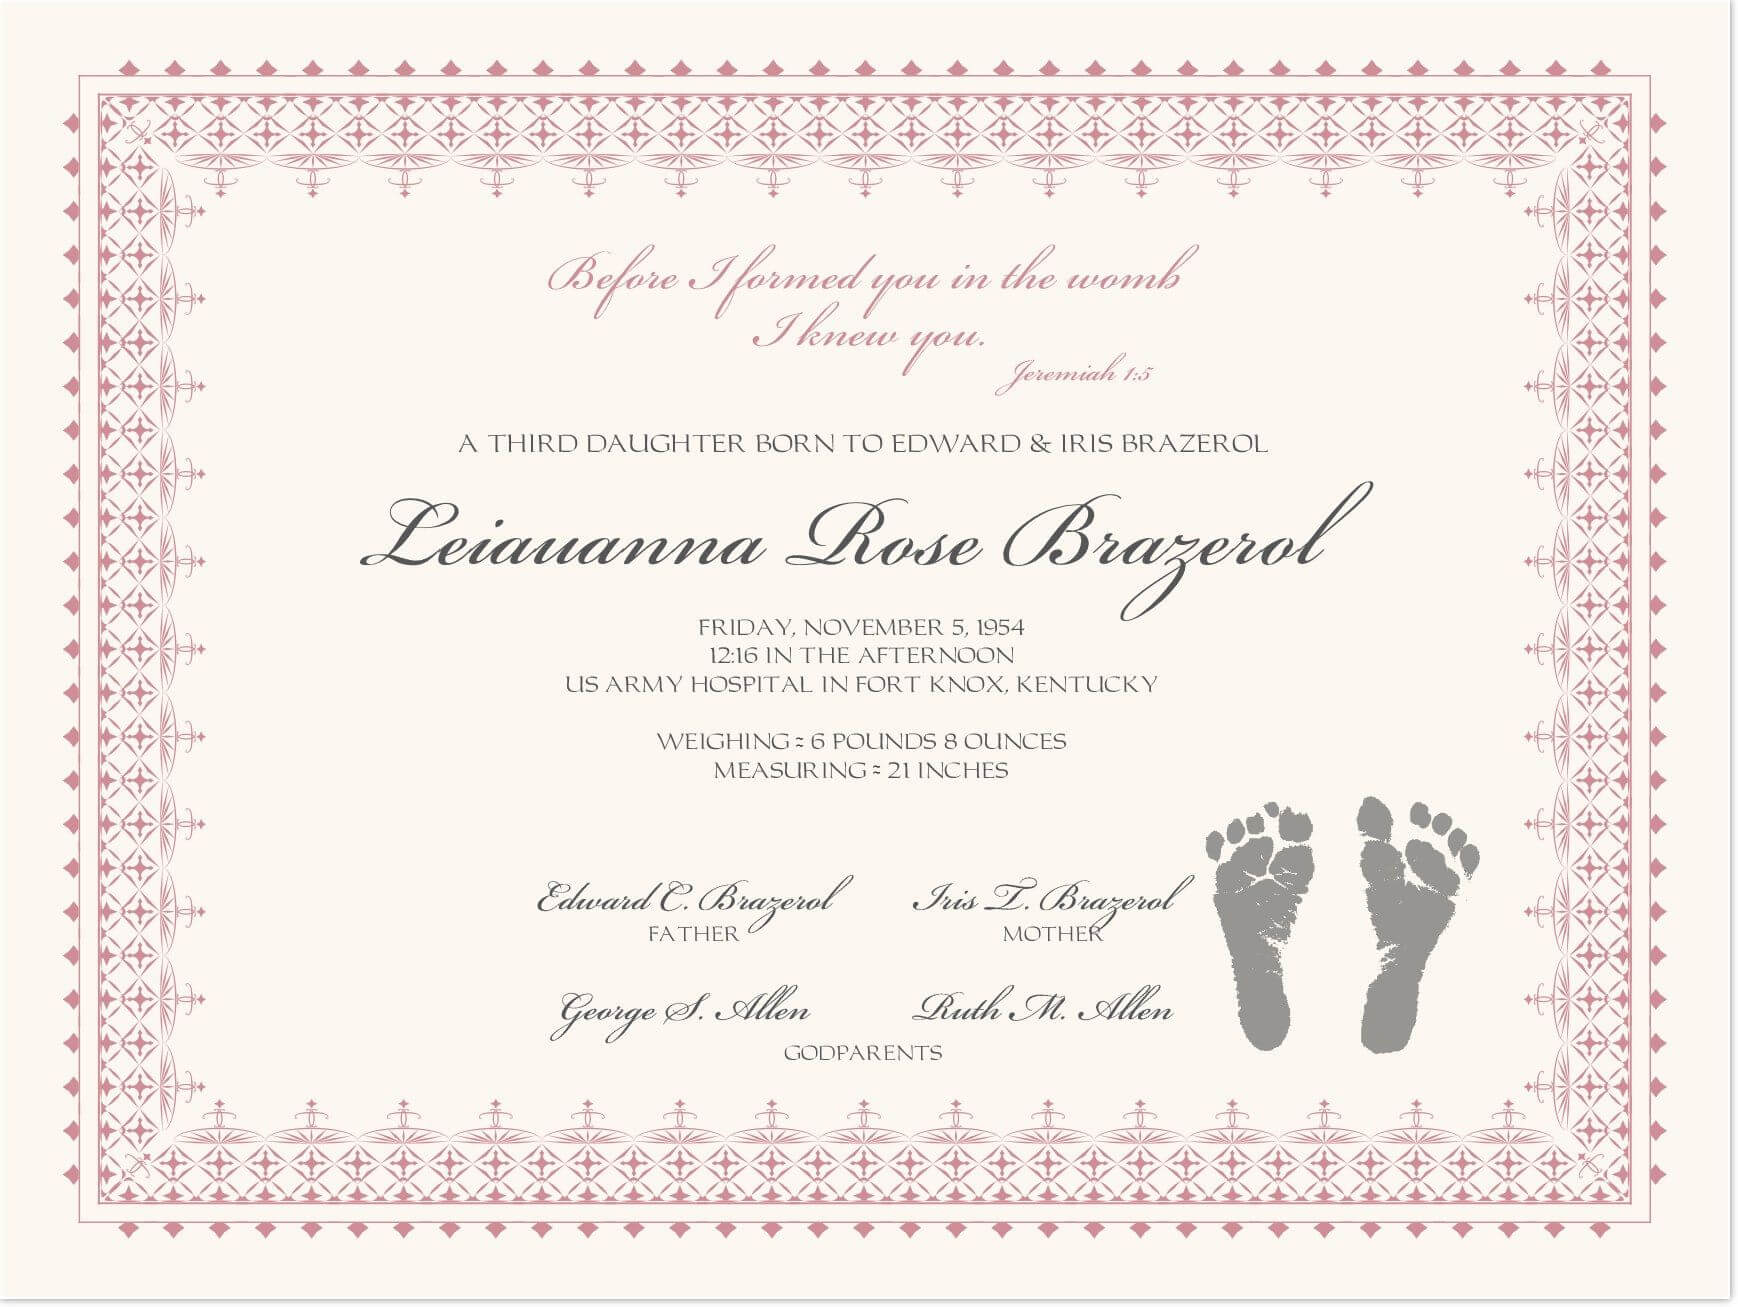 002 Baby Dedication Certificate Template Ideas Wonderful With Baby Christening Certificate Template